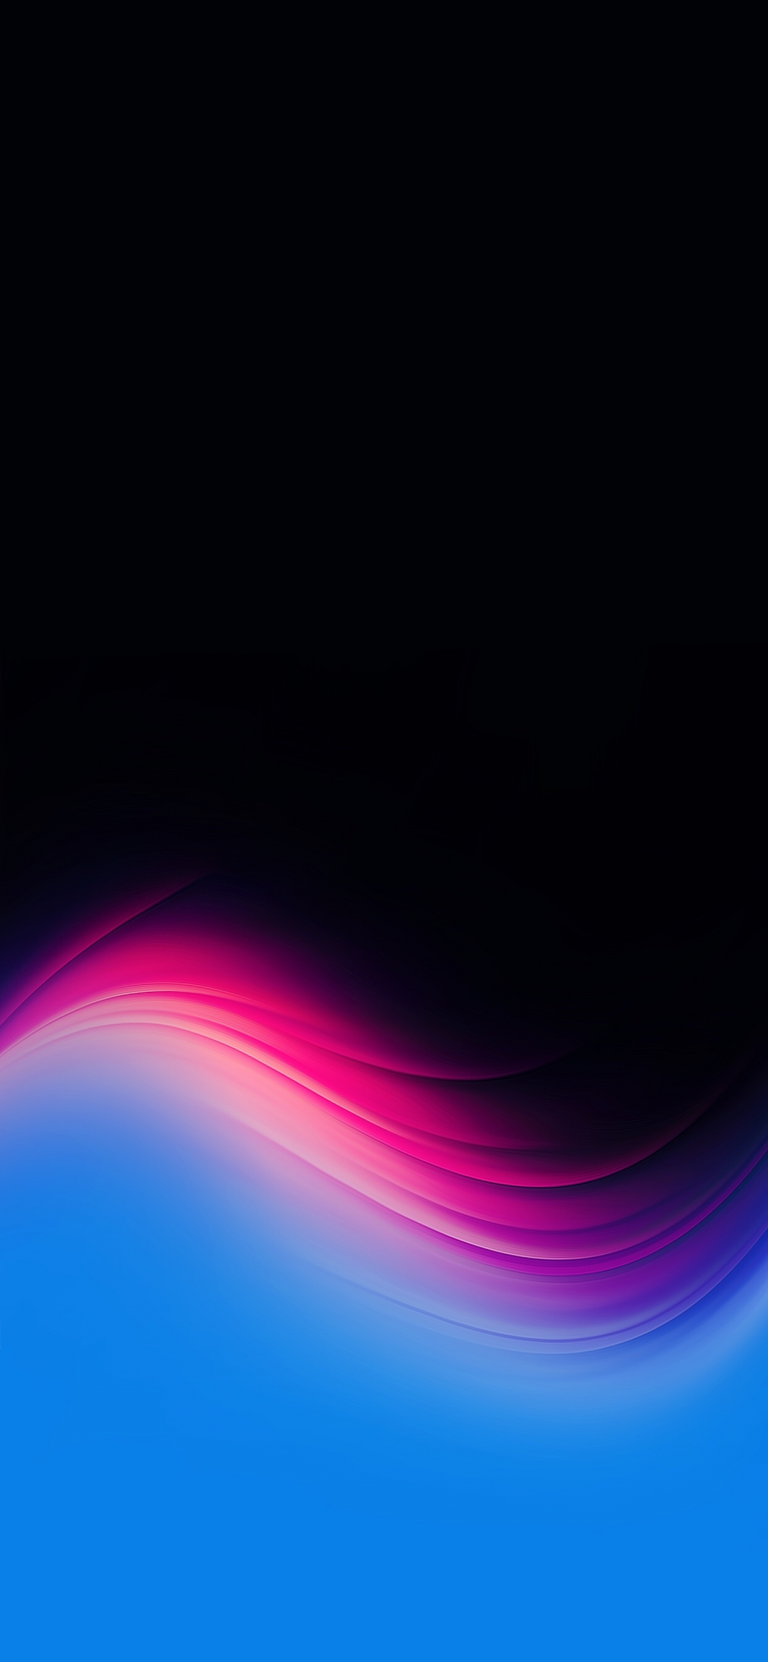 True Black With Colorful Gradients Wallpapers Iphone Wallpaper Retina Wallpaper Android Wallpaper